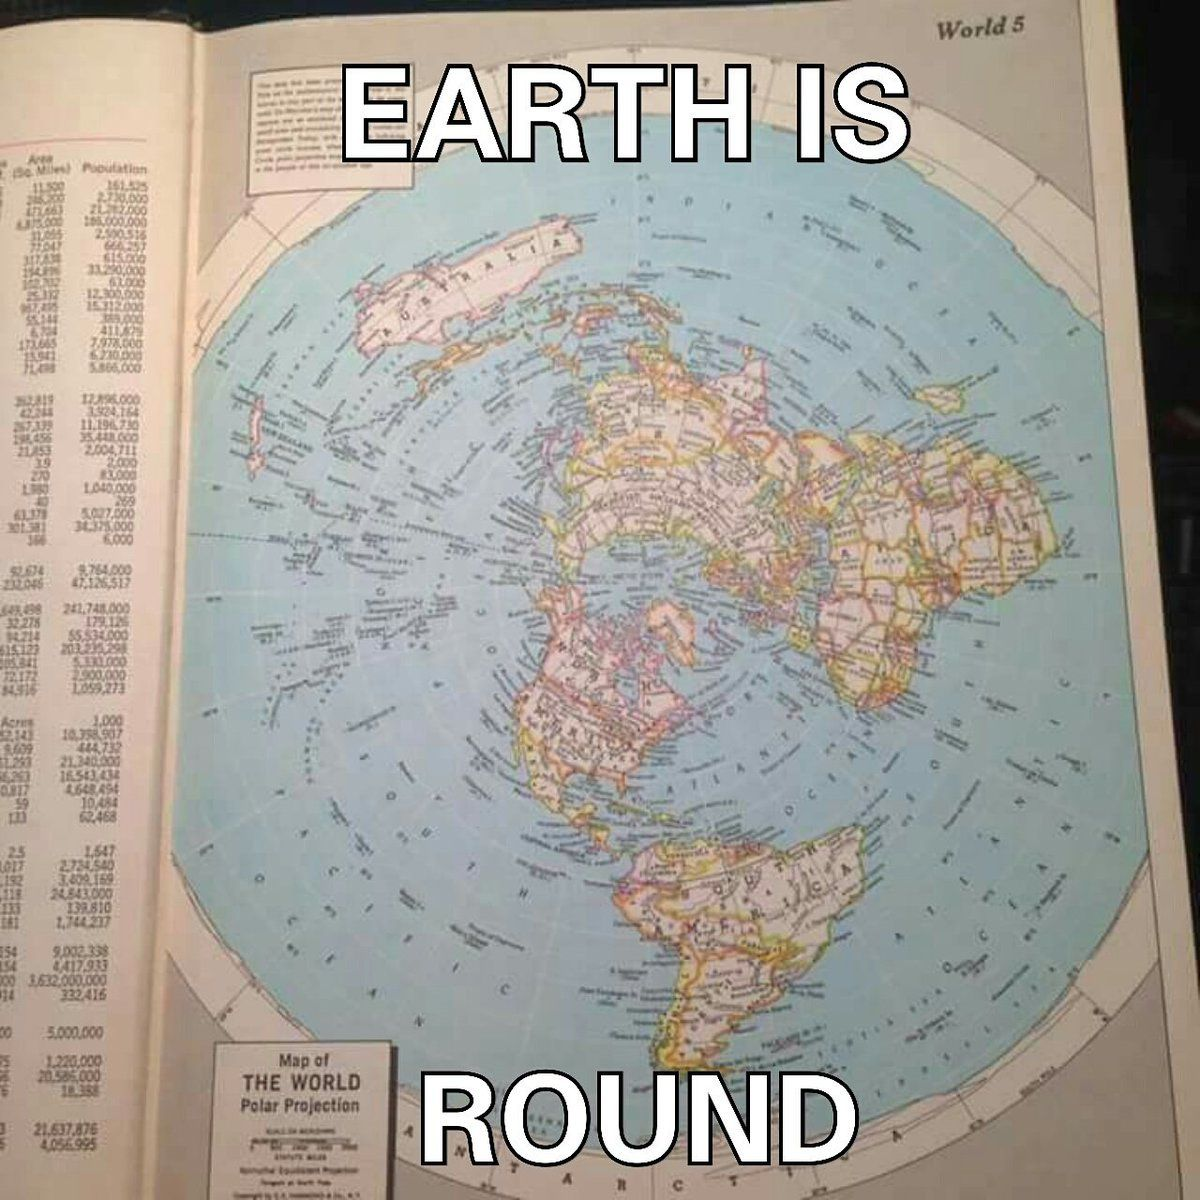 Yes the earth is round round like a disc not round like a ball yes the earth is round round like a disc not round like a ball its a round flat circle inside a square flatearth theearth antarctica gumiabroncs Gallery